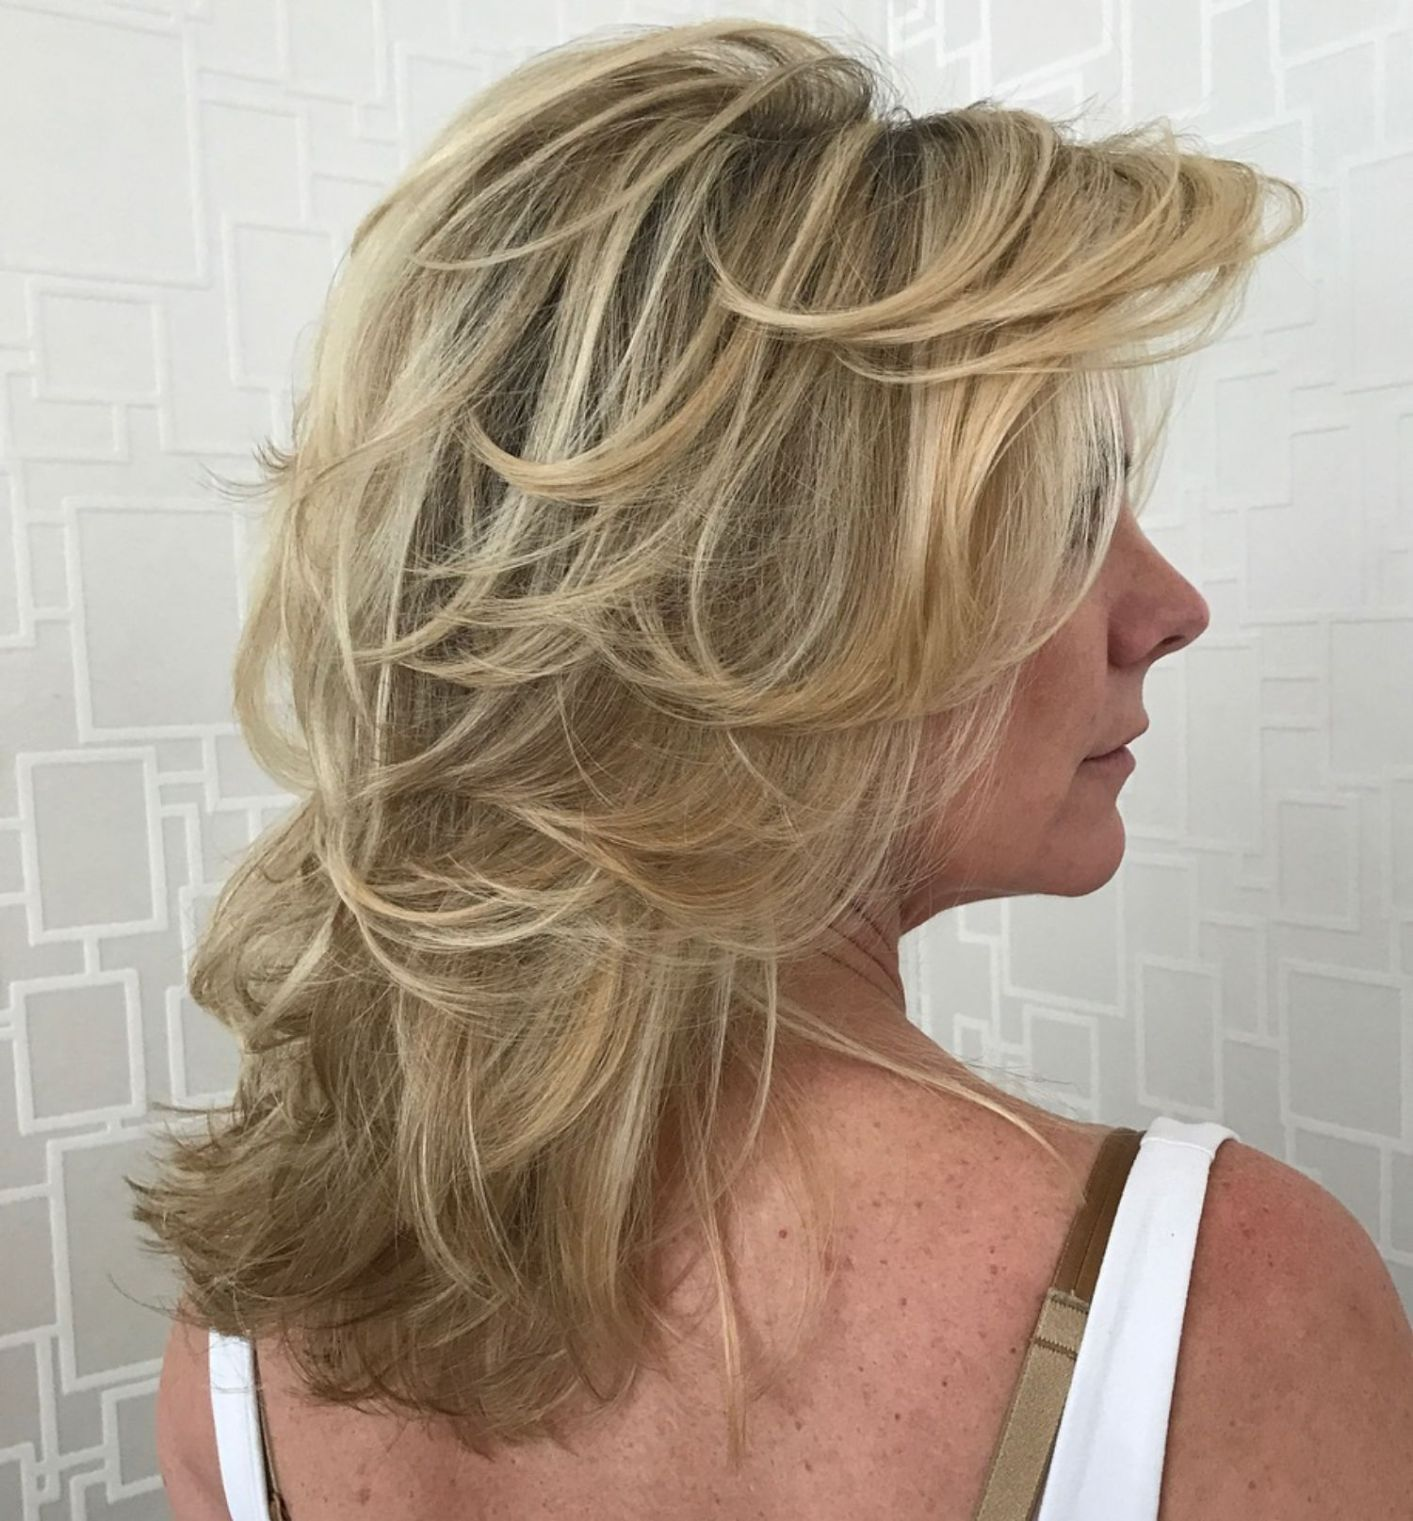 80 Best Modern Hairstyles And Haircuts For Women Over 50 In 2020